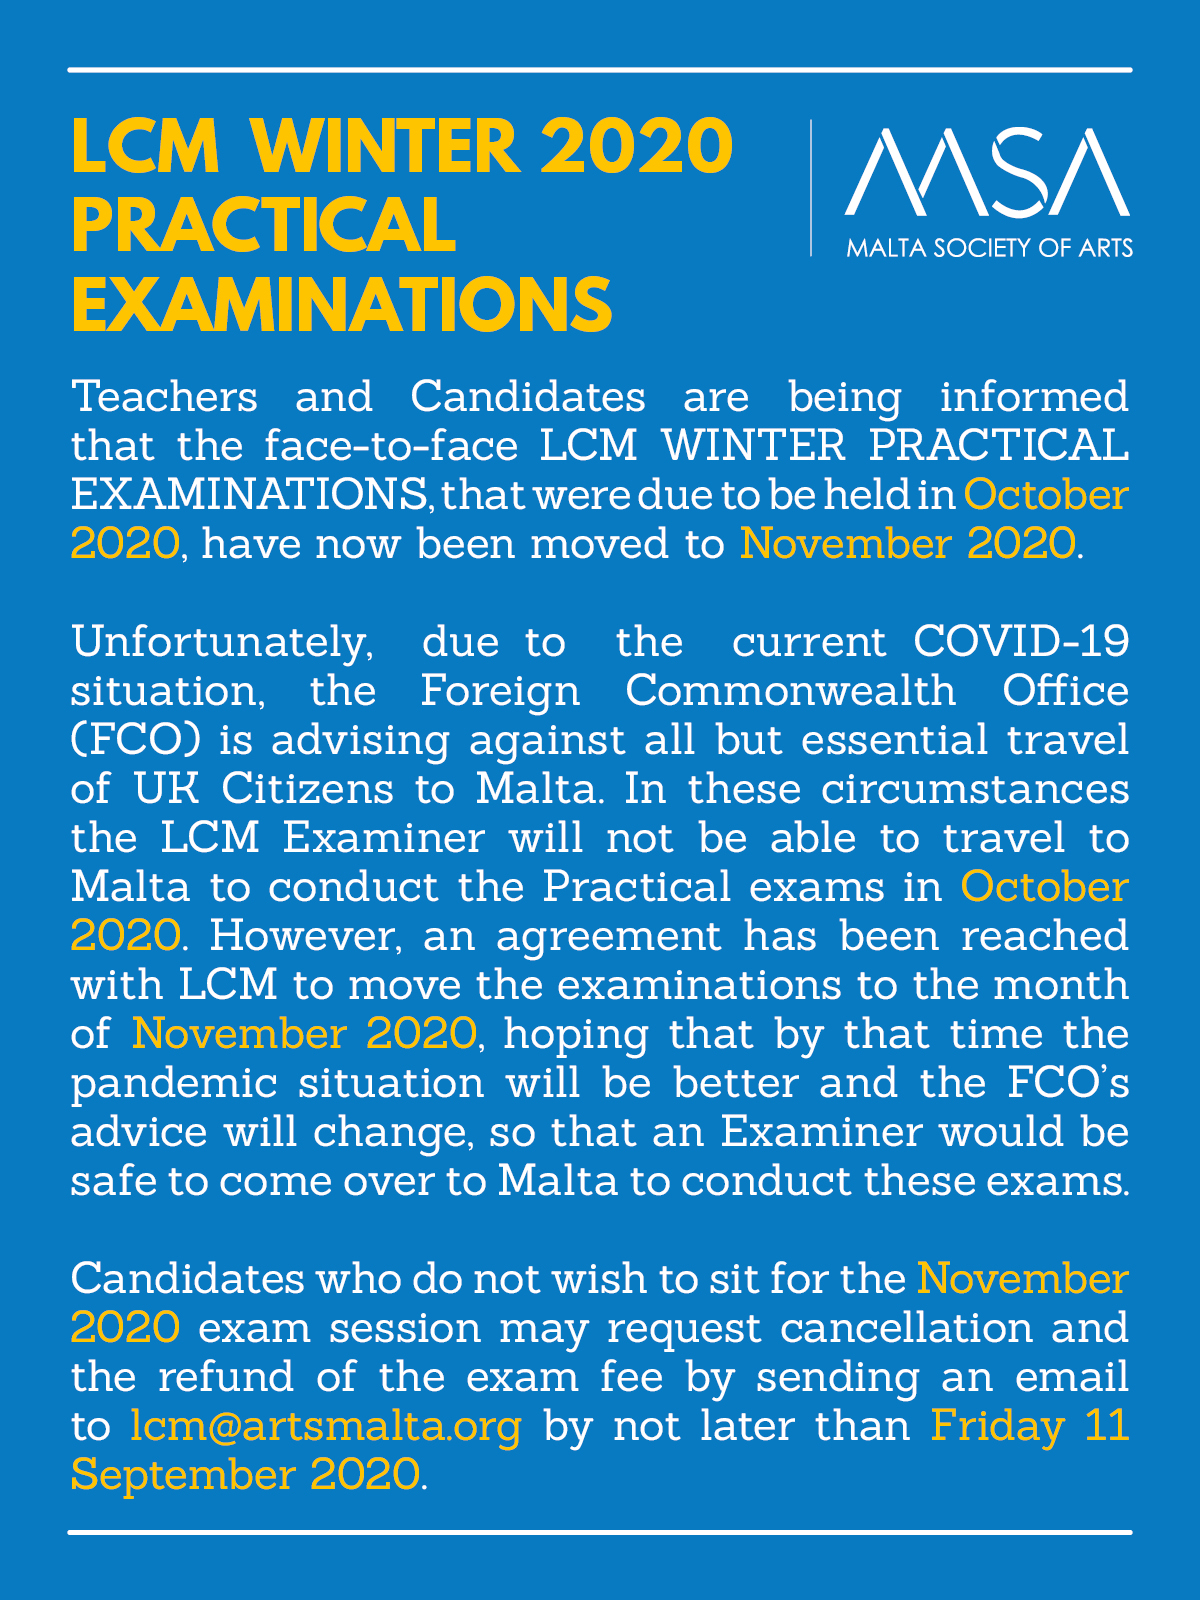 LCM Winter 2020 Practical Exams